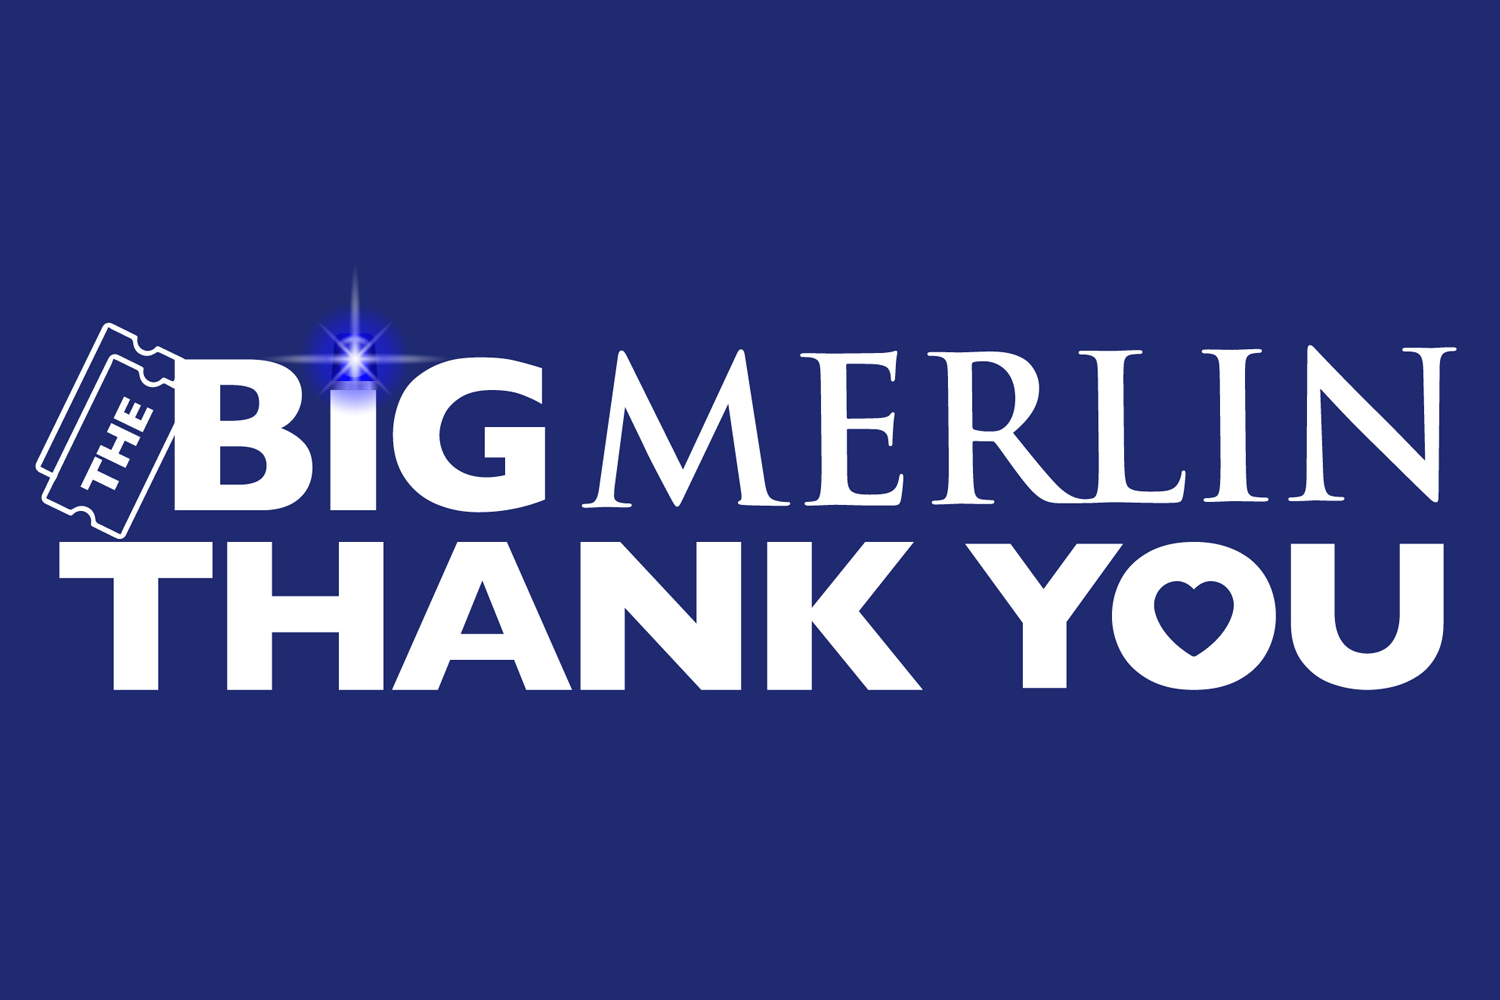 The Big Merlin Thank You